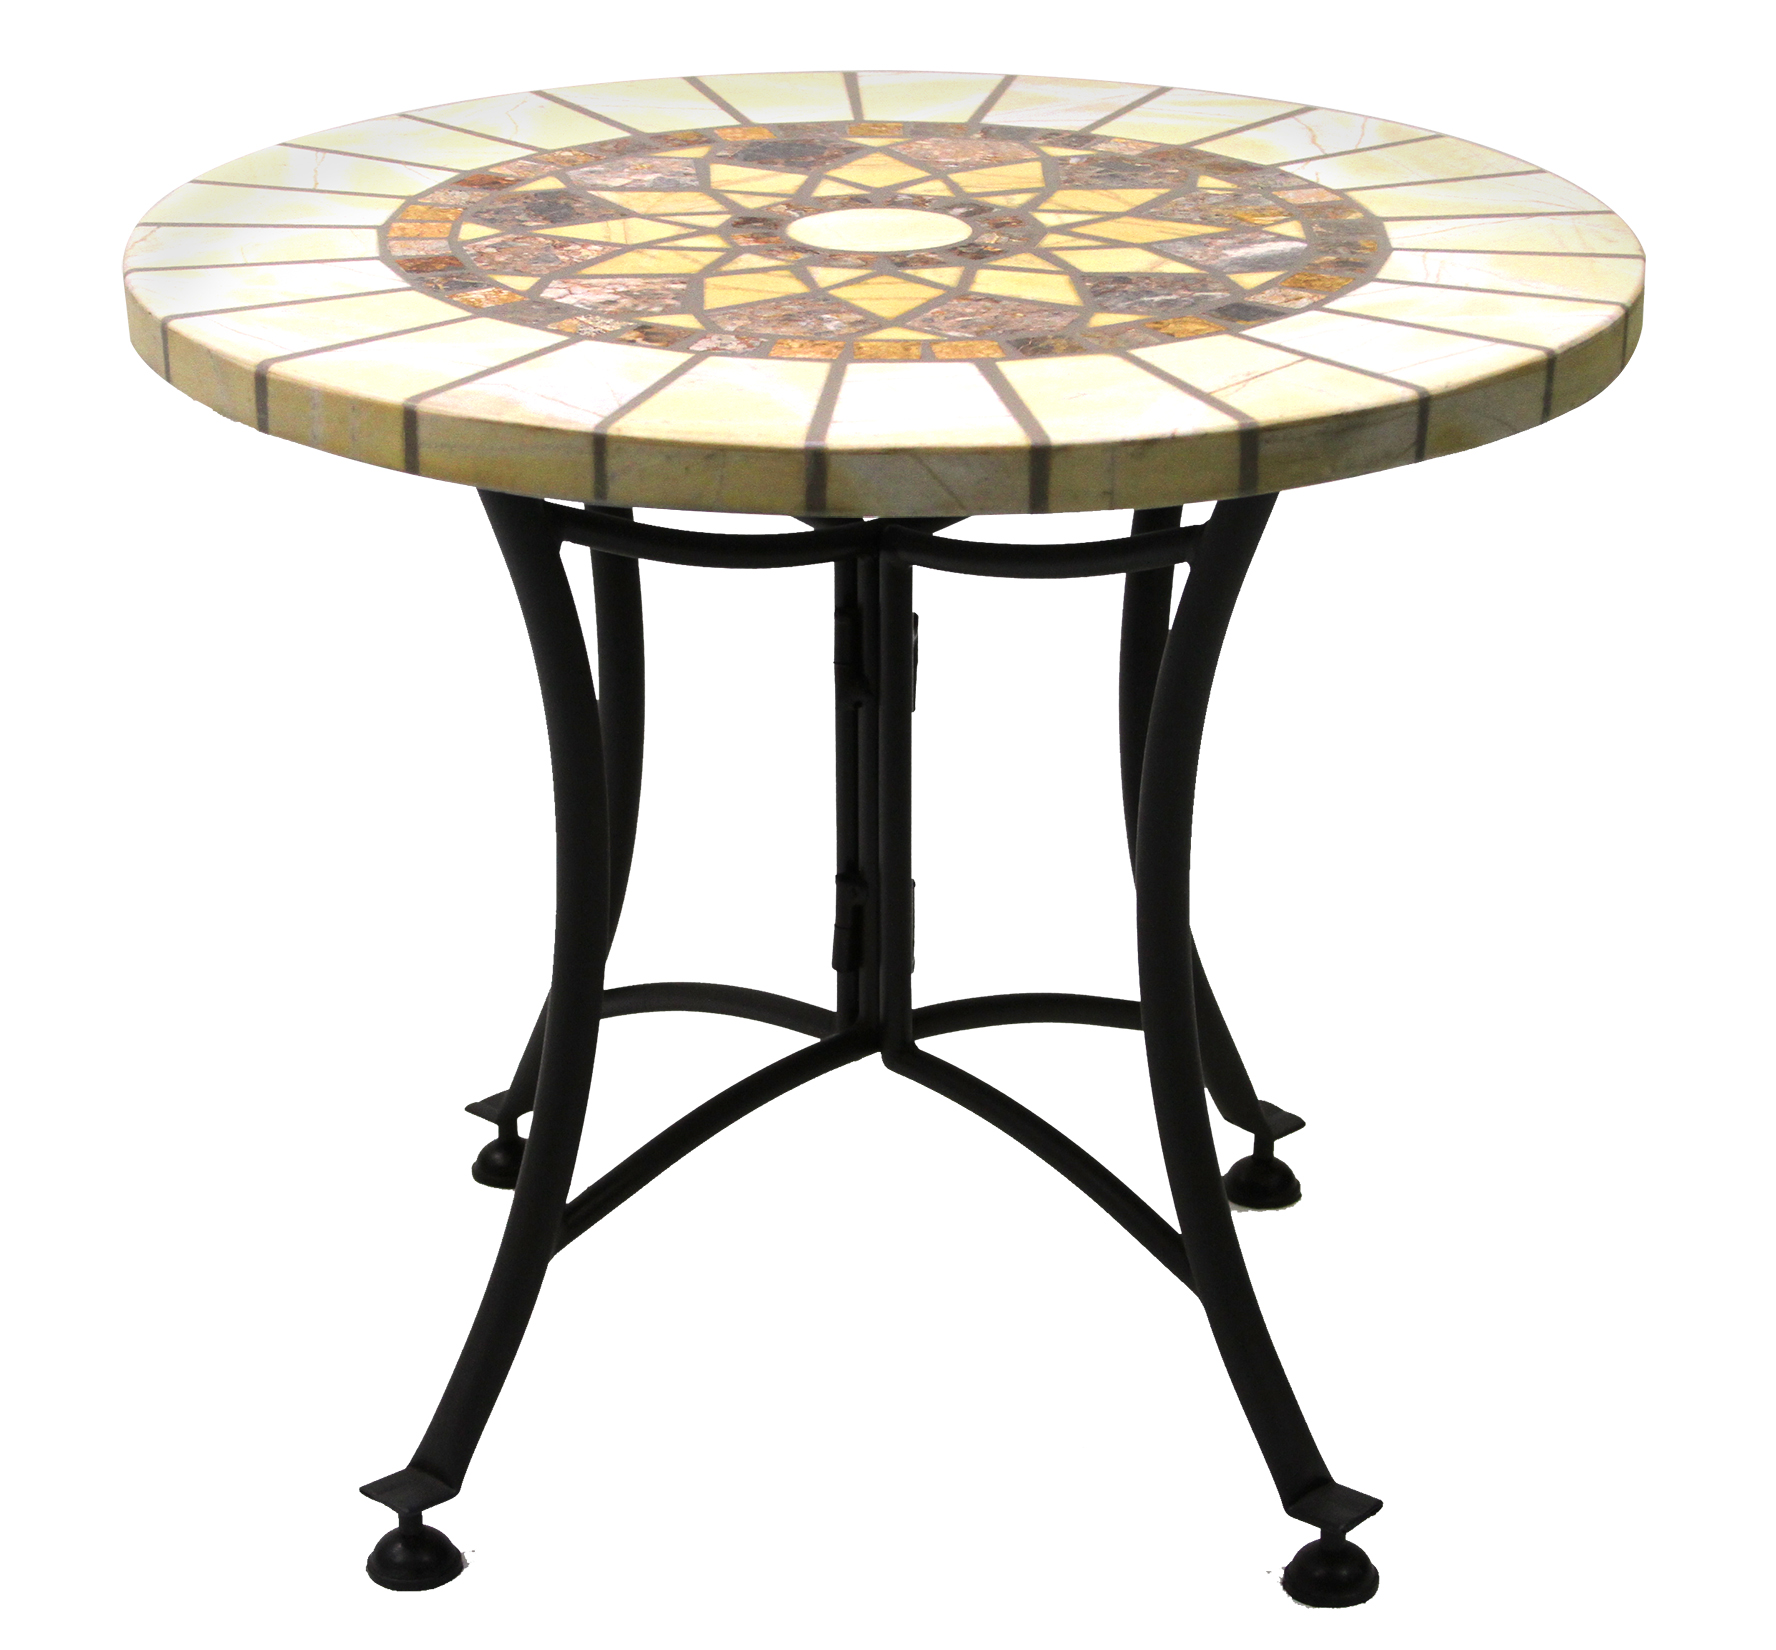 patio table outdoor side round target legs metal glass wrought base bronze threshold drum iron white corranade top tables accent full size best coffee for small living rooms pink